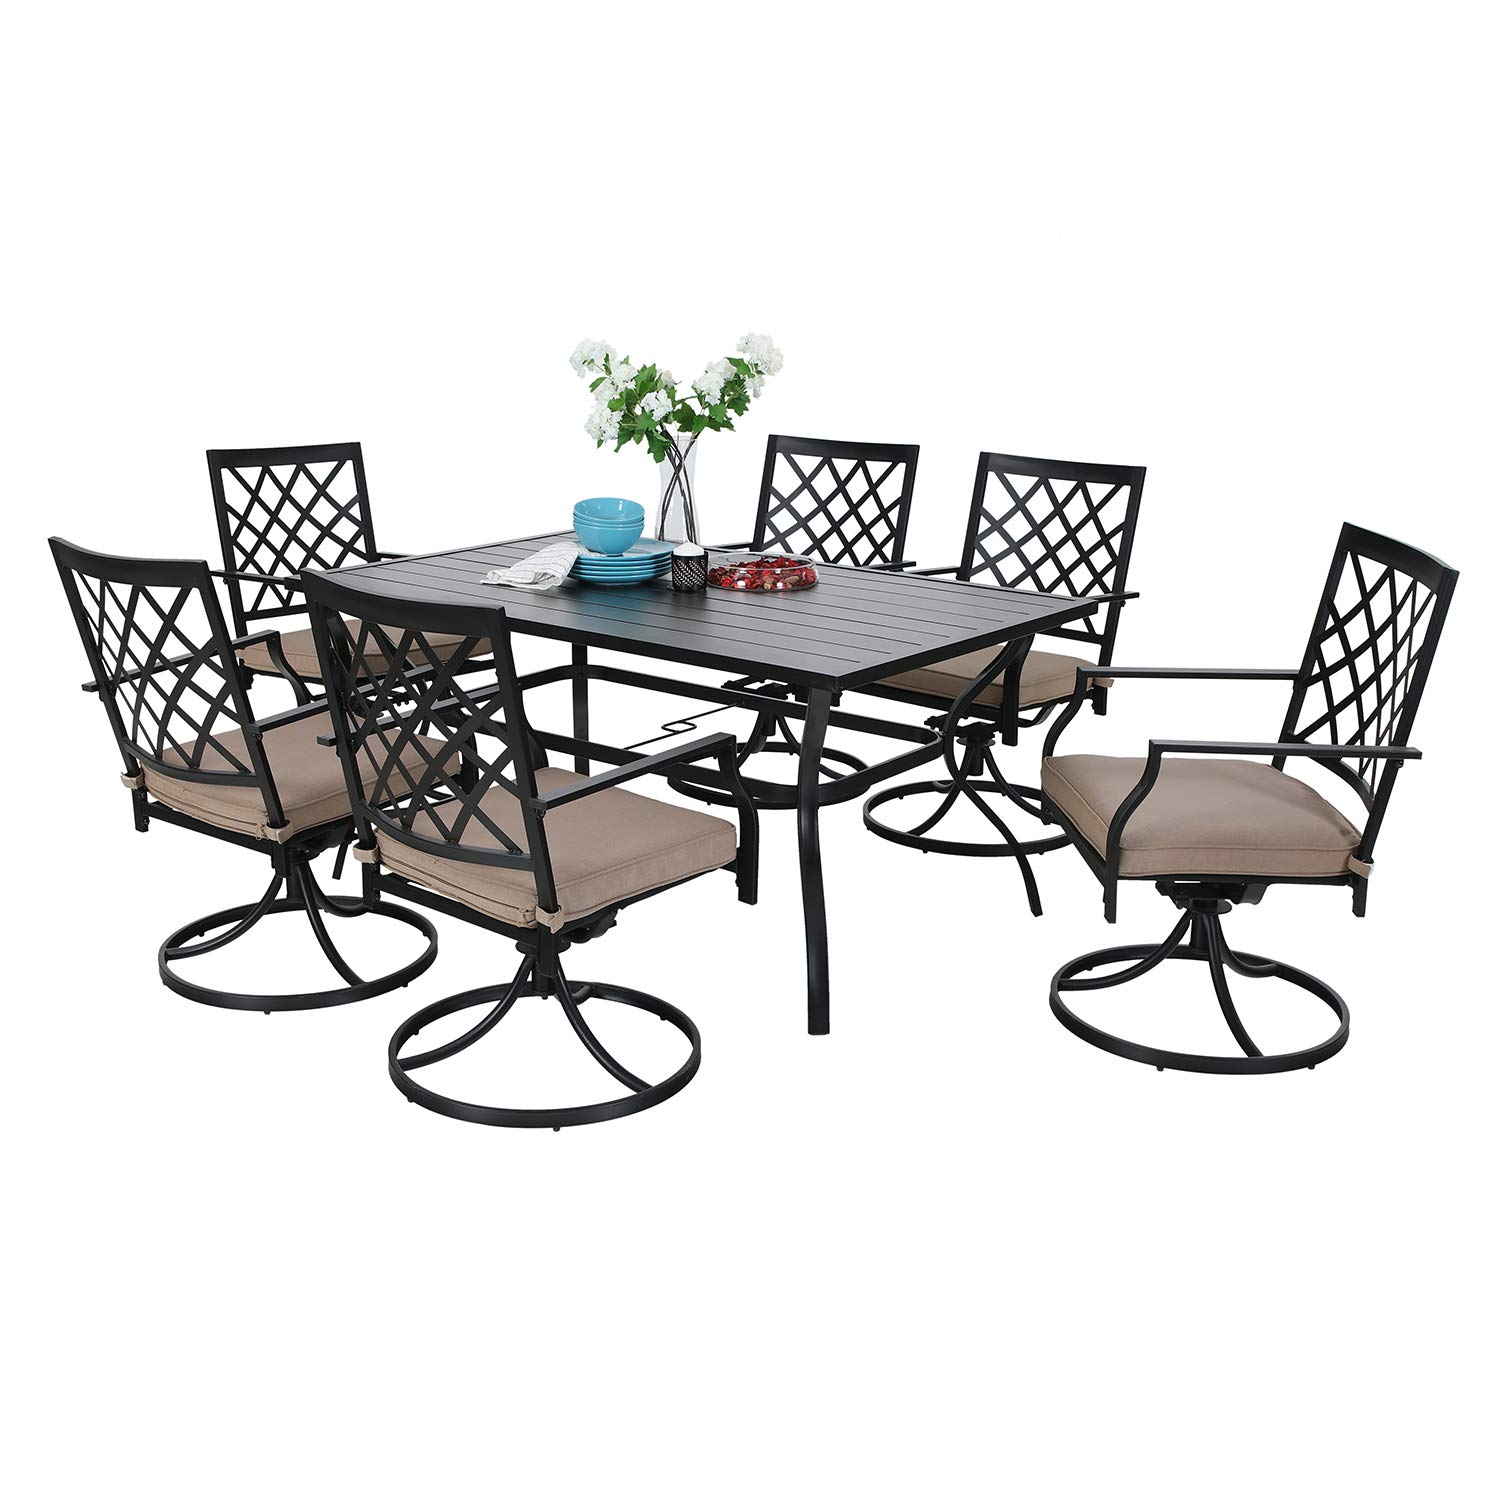 MF Outdoor Patio Dining Set 7 Pieces Metal Furniture Set, 6 x Swivel Chairs with 1 Rectangular Umbrella Table for Outdoor Lawn Garden Black